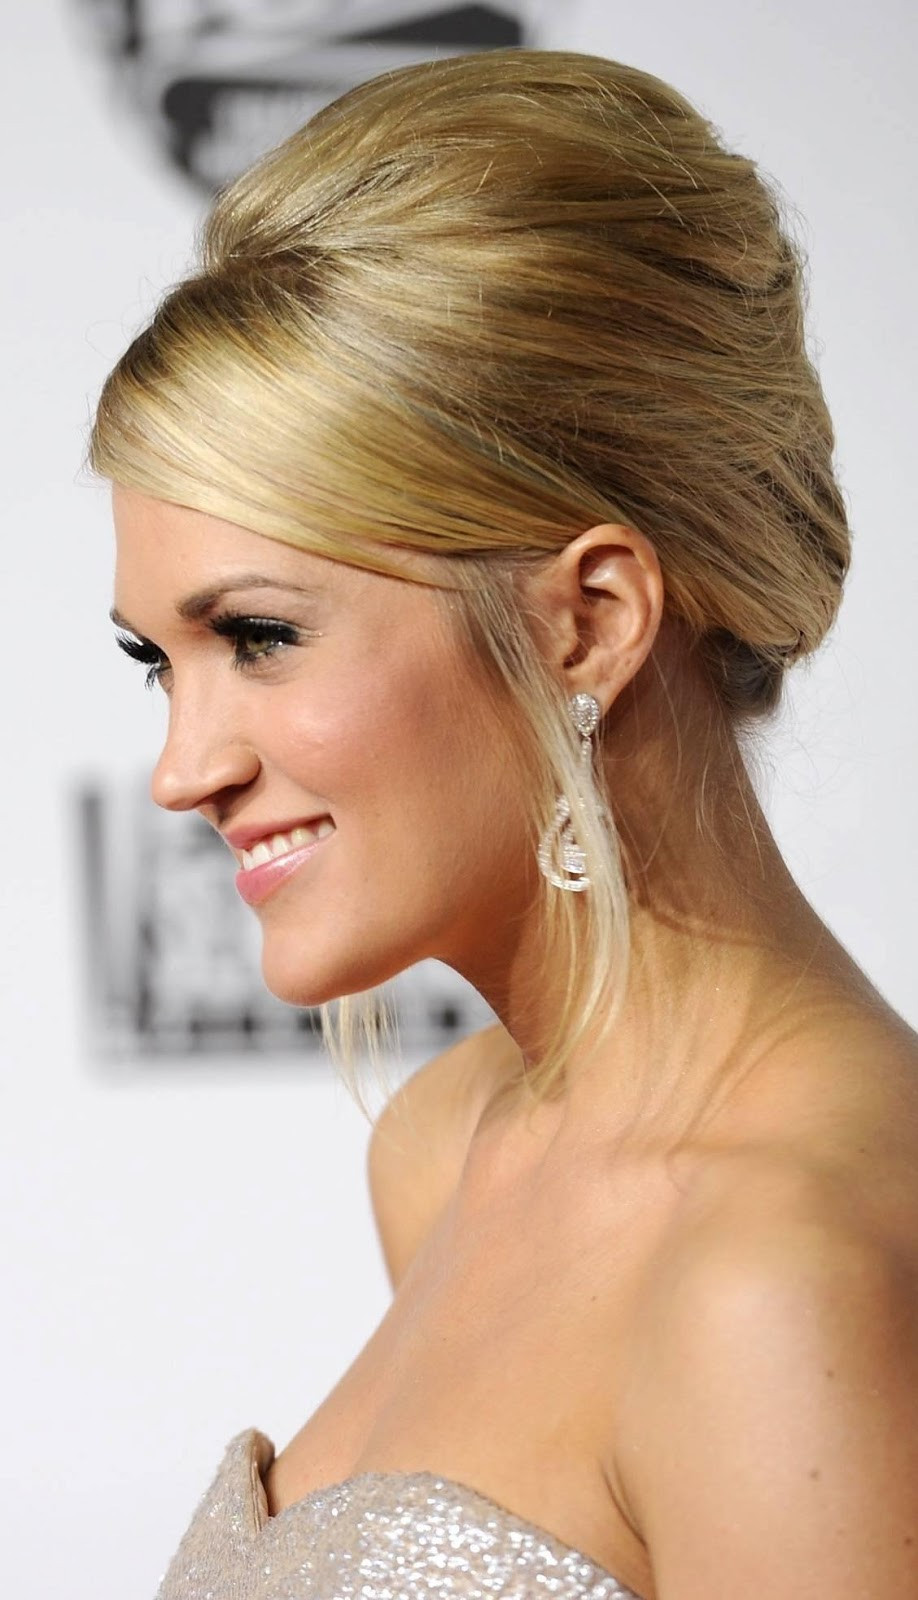 Best ideas about Updo Hairstyle . Save or Pin Style Mad Updo Hairstyles Now.